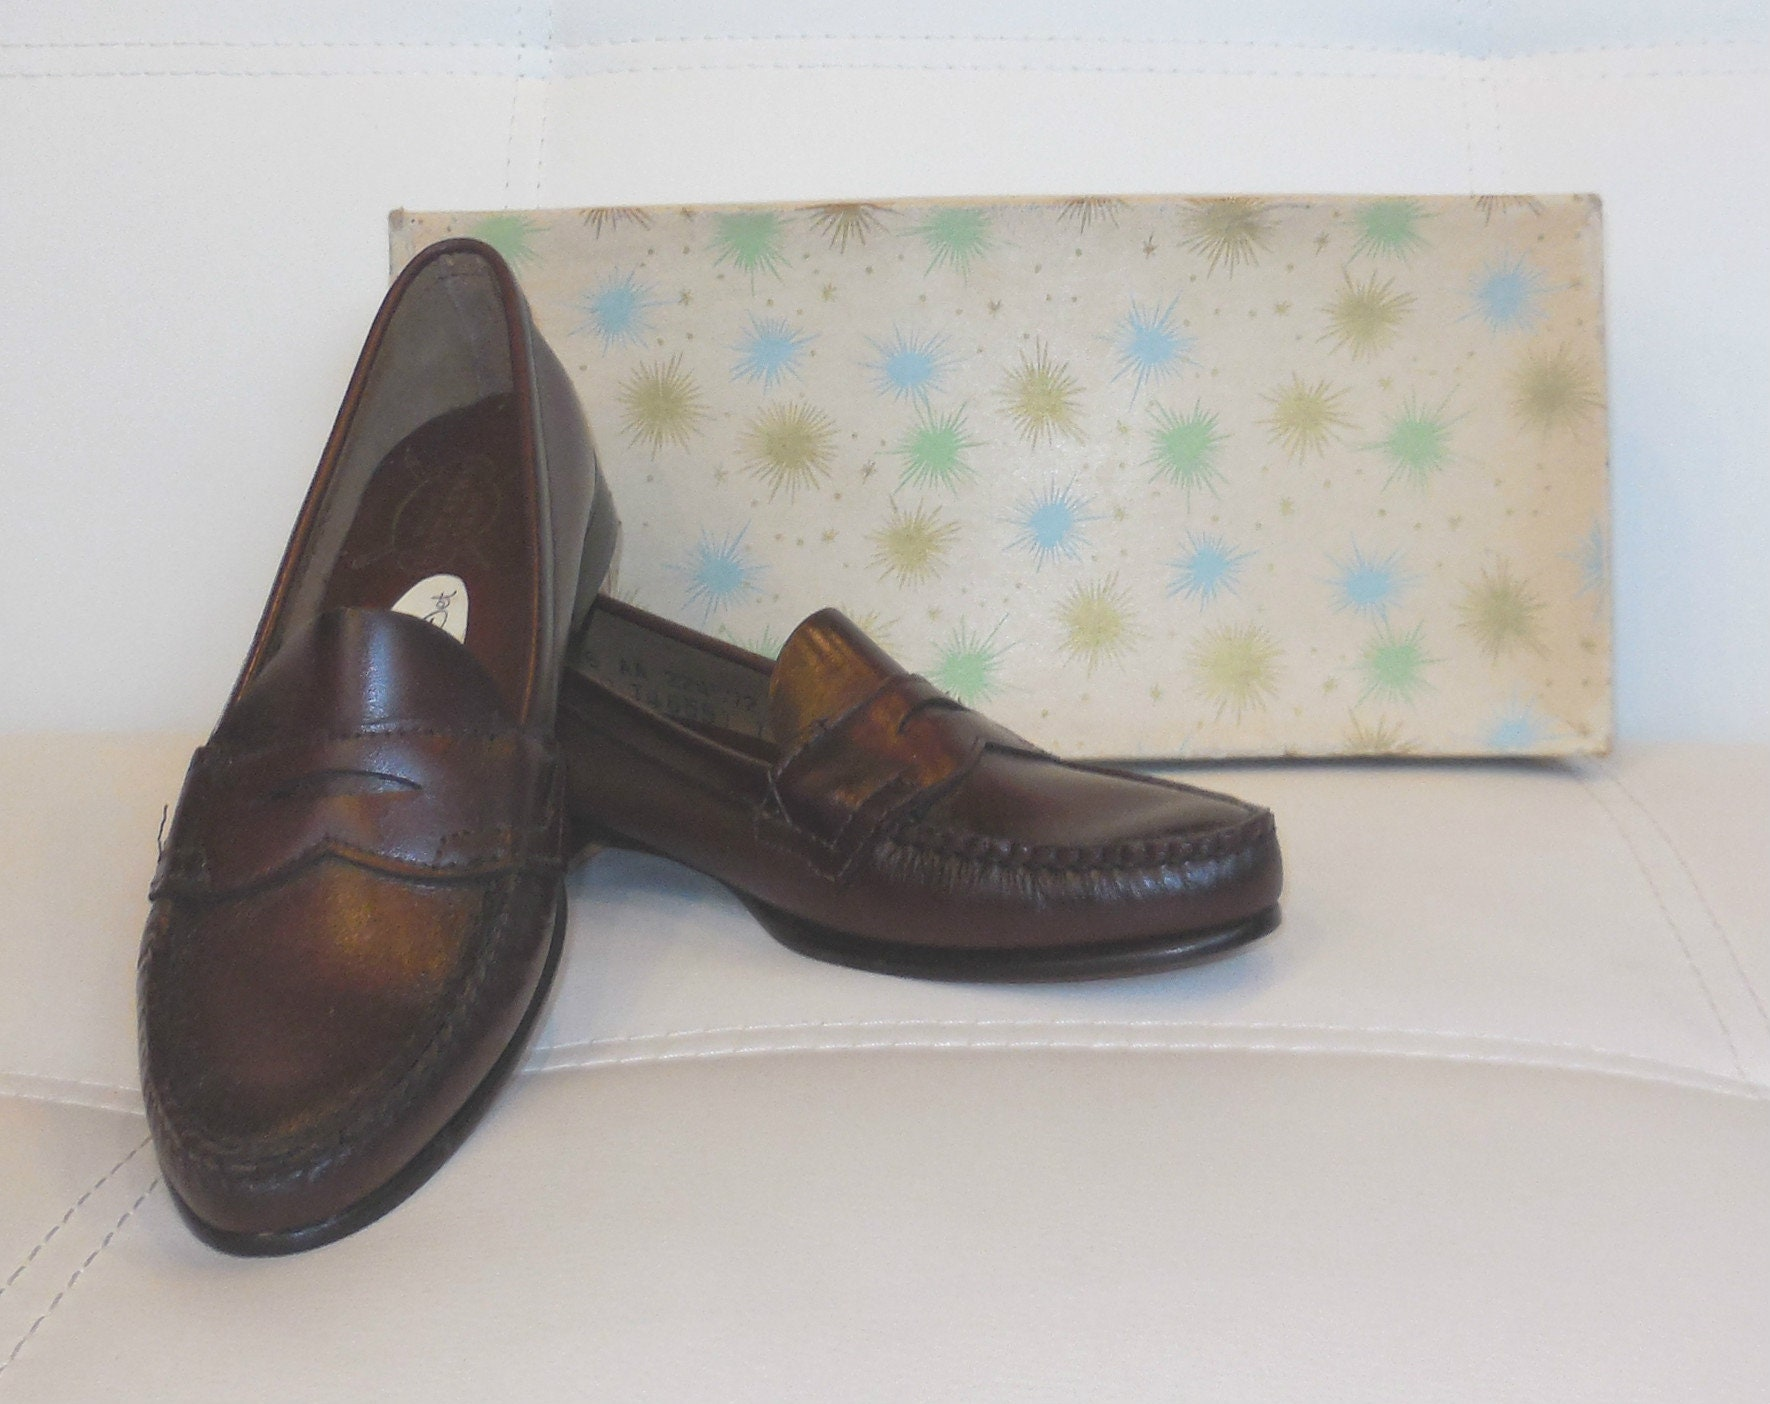 Deadstock Vintage 1950s Penny Loafers Oxblood Red Brown ...